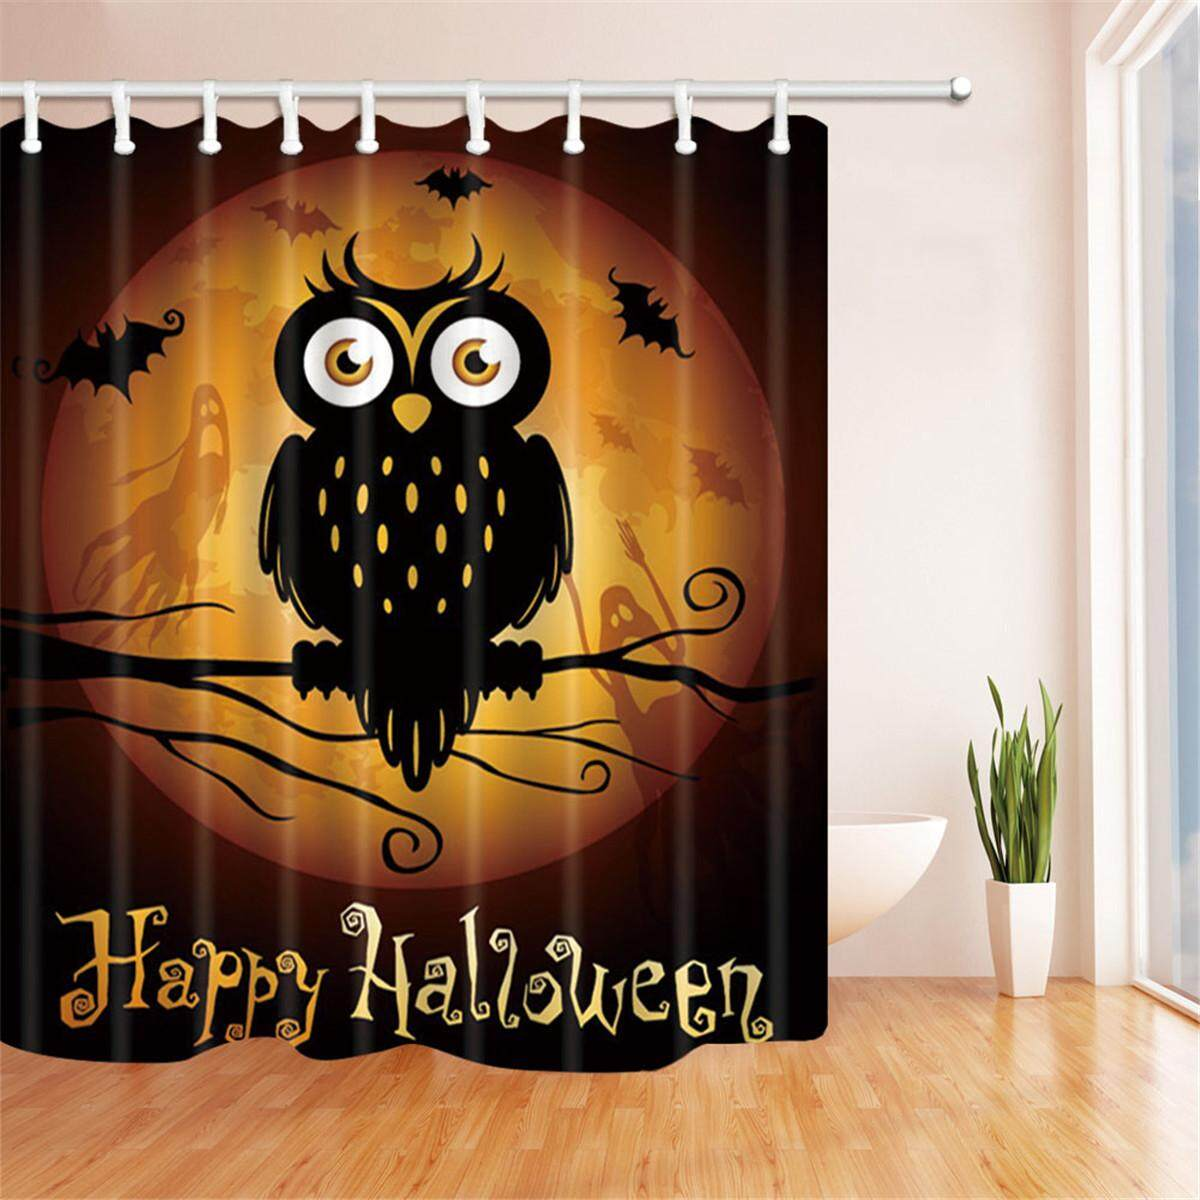 Halloween Pumpkin Shower Curtain +12 Hooks Waterproof Bathroom Decor 71 X 71inch By Glimmer.